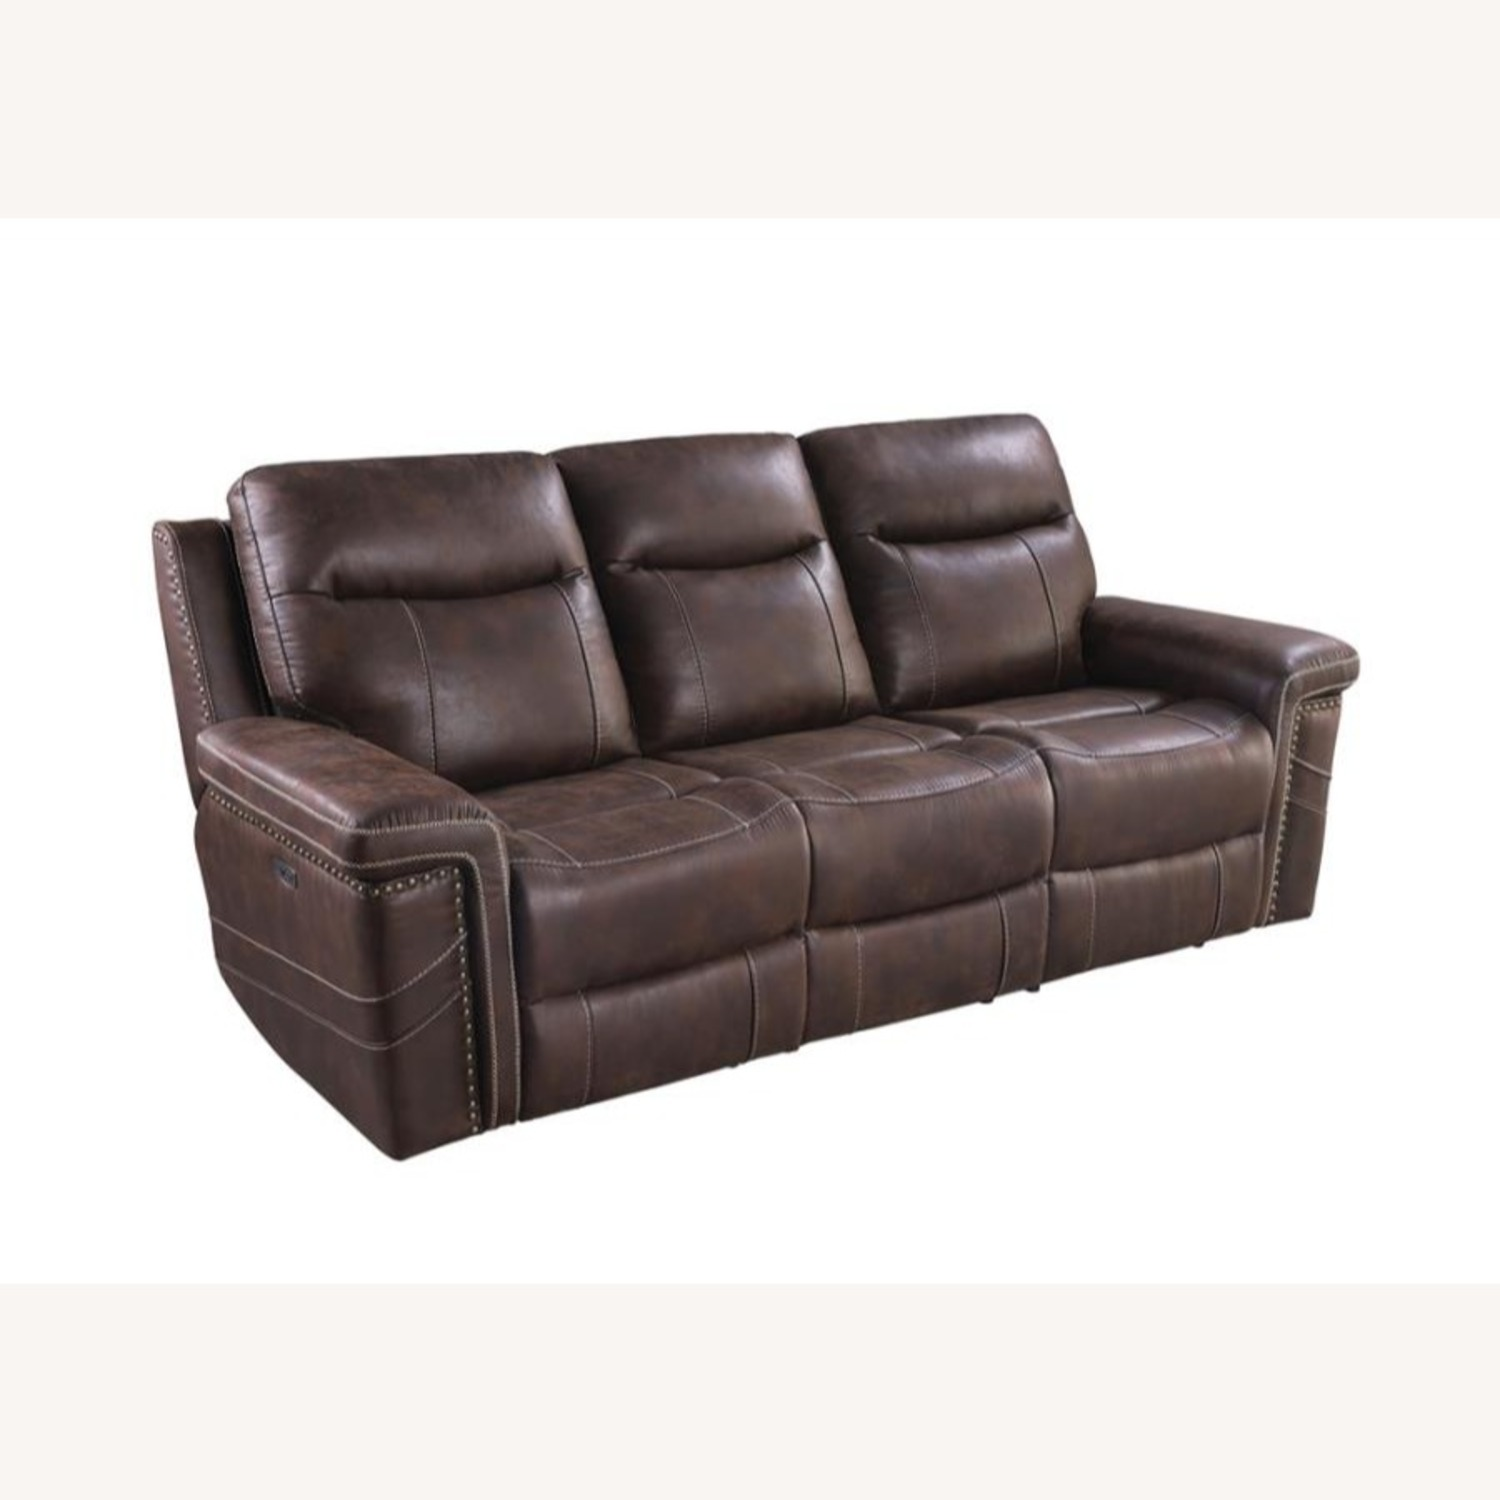 Power2 Sofa In Rich Brown Faux Suede - image-0